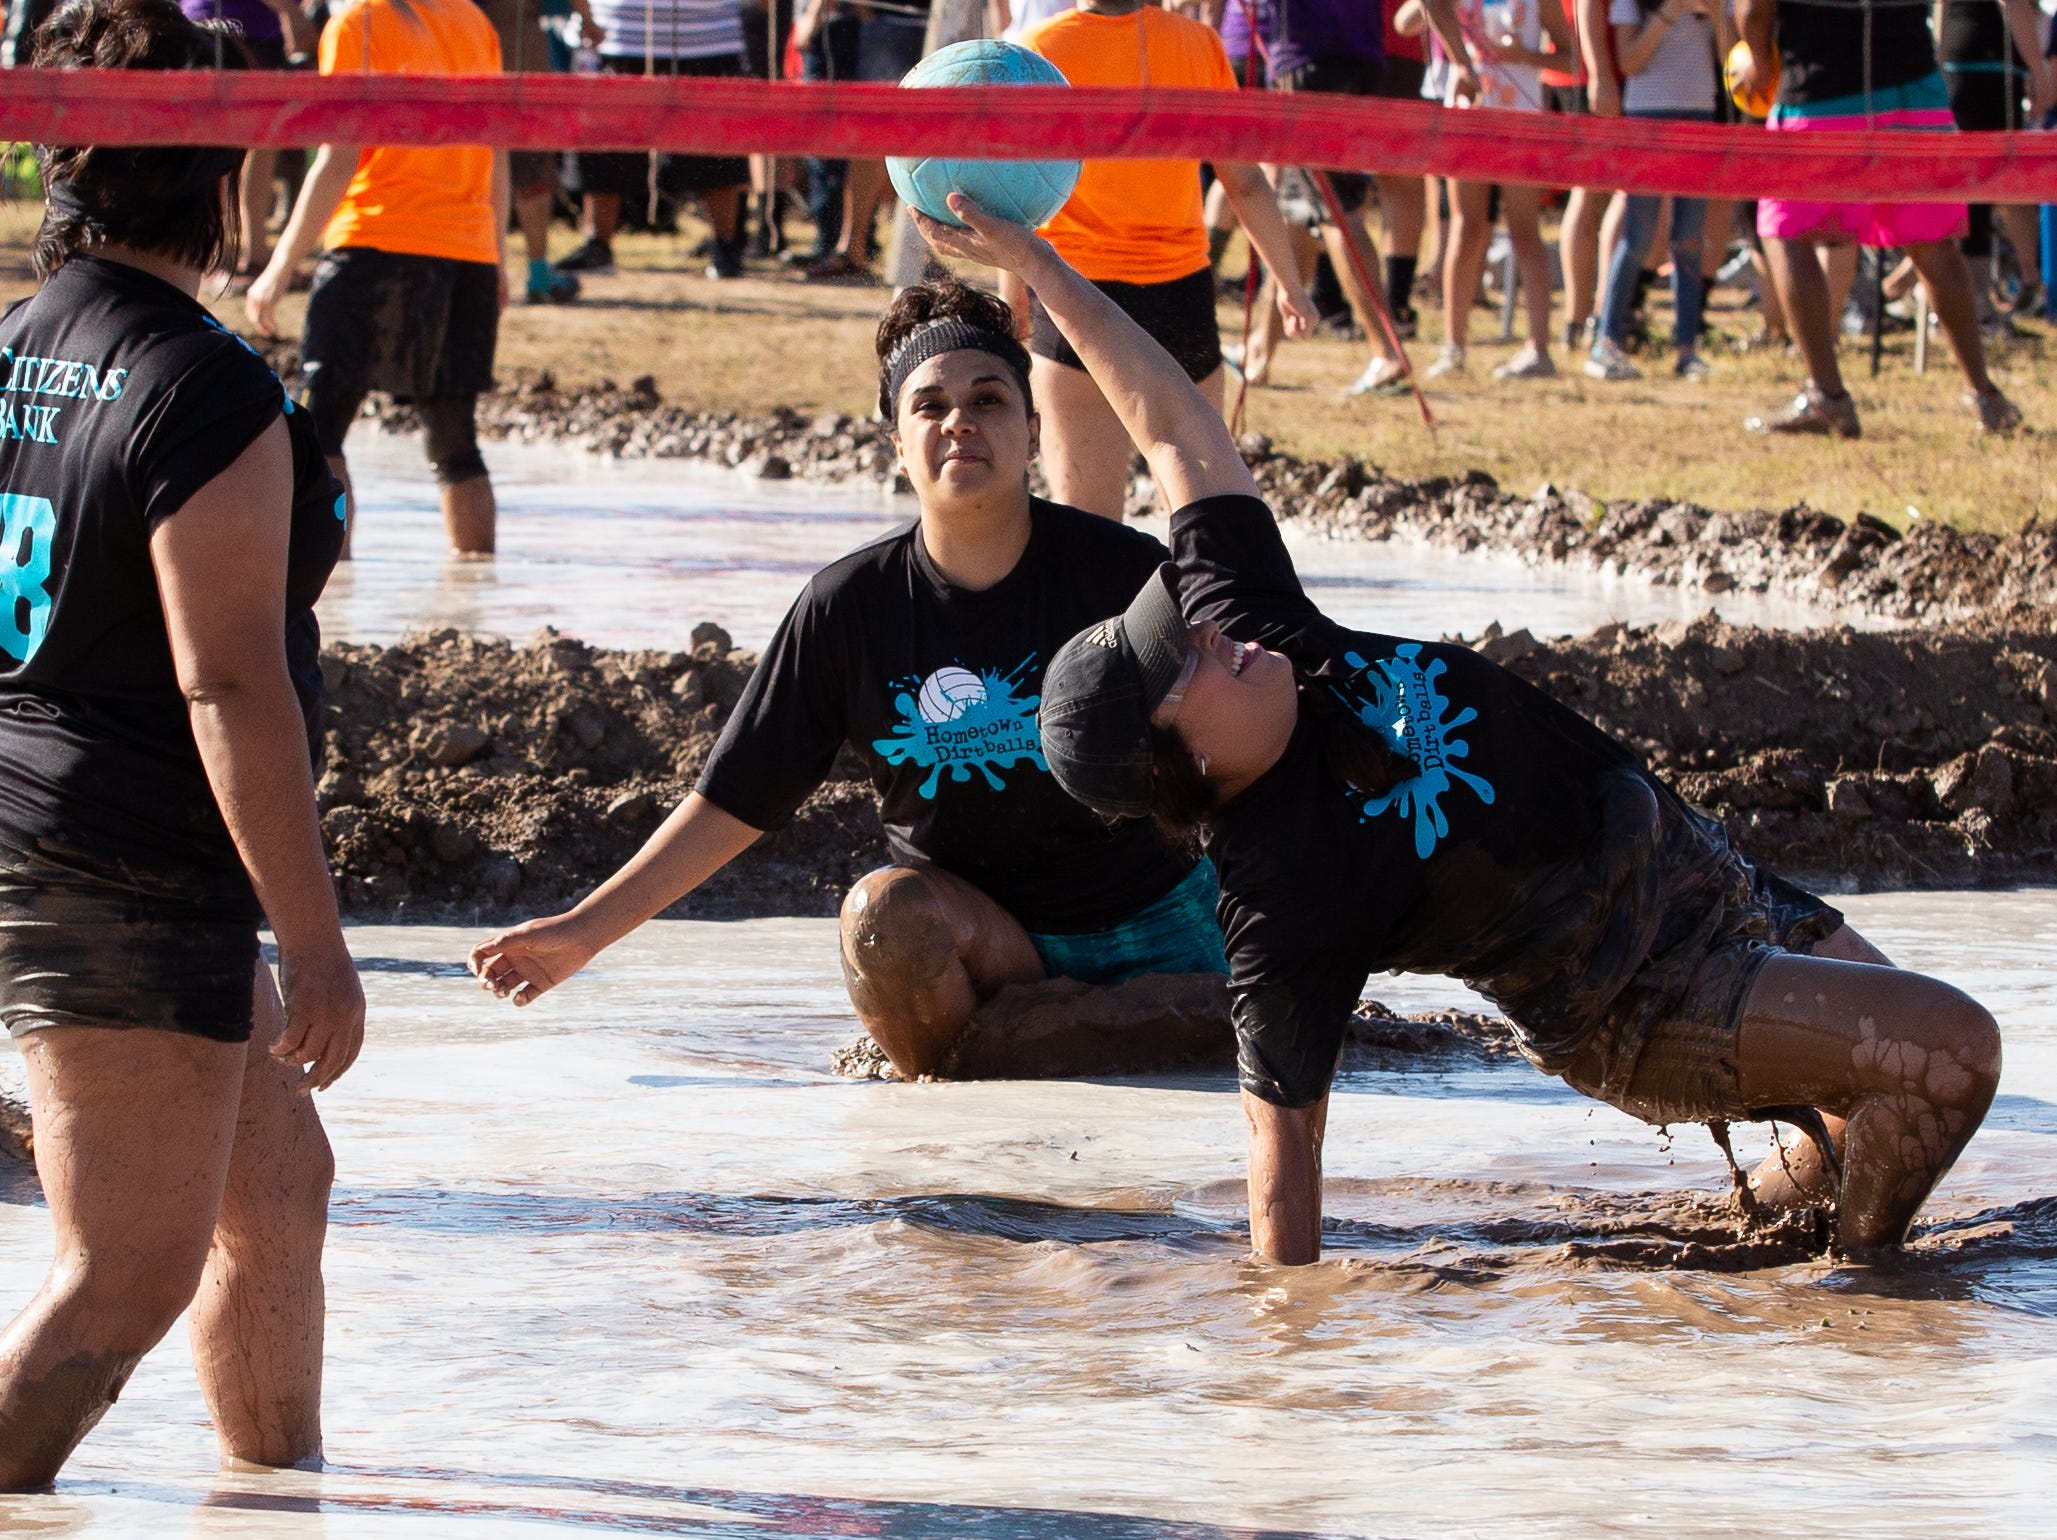 Team Hometown Dirtballs duo of (L) Brenda Martinez and Maria Rodriguez tag team on a save during the 9th Annual Mudd Volleyball tournament on September 8, 2018.